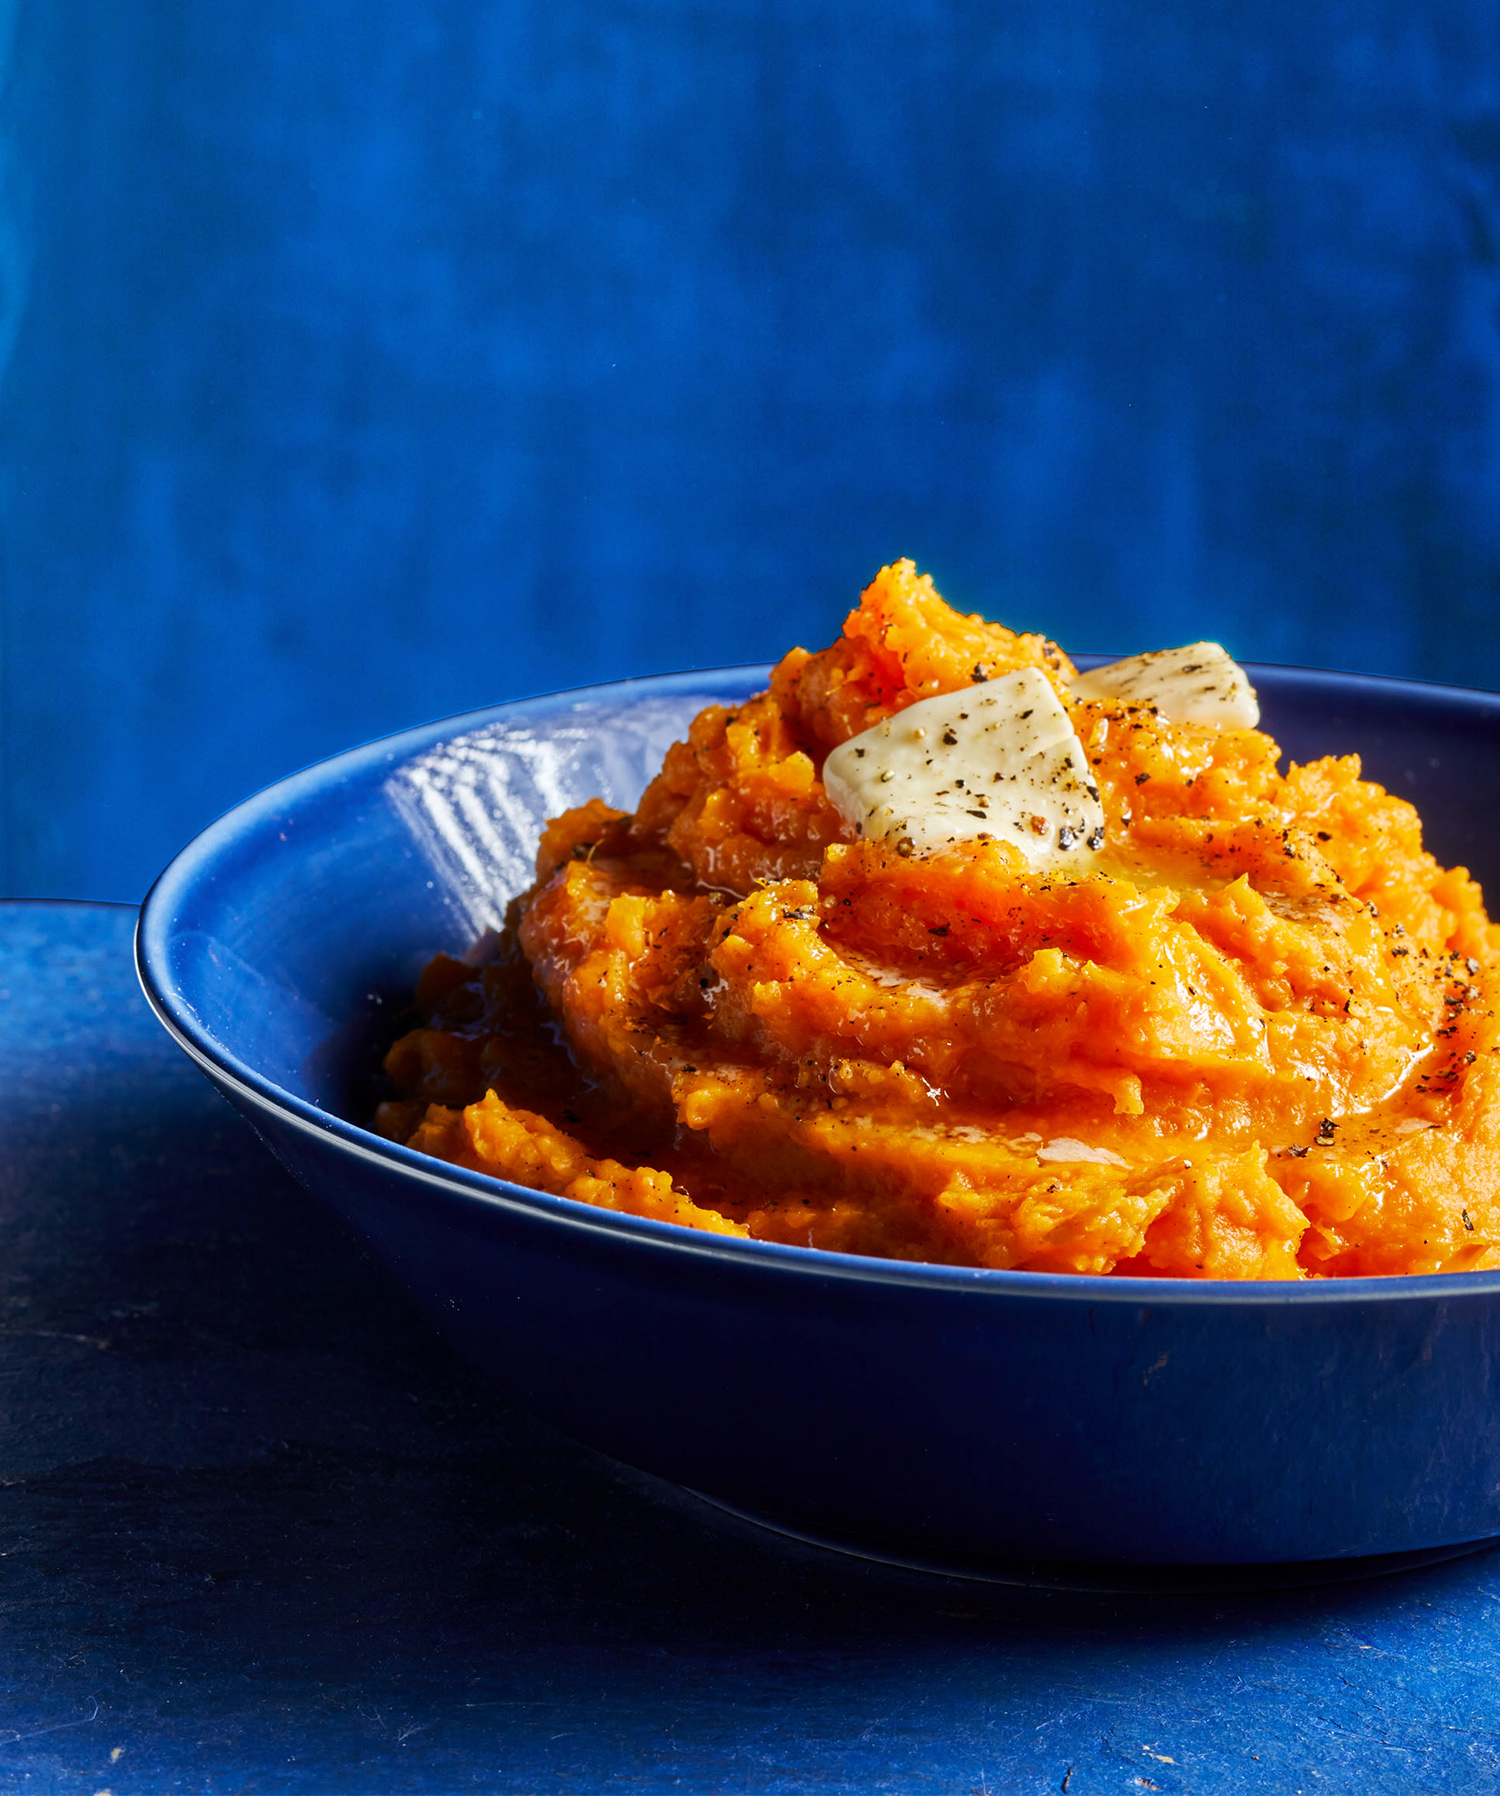 Mashed Sweet Potatoes with Orange and Mascarpone